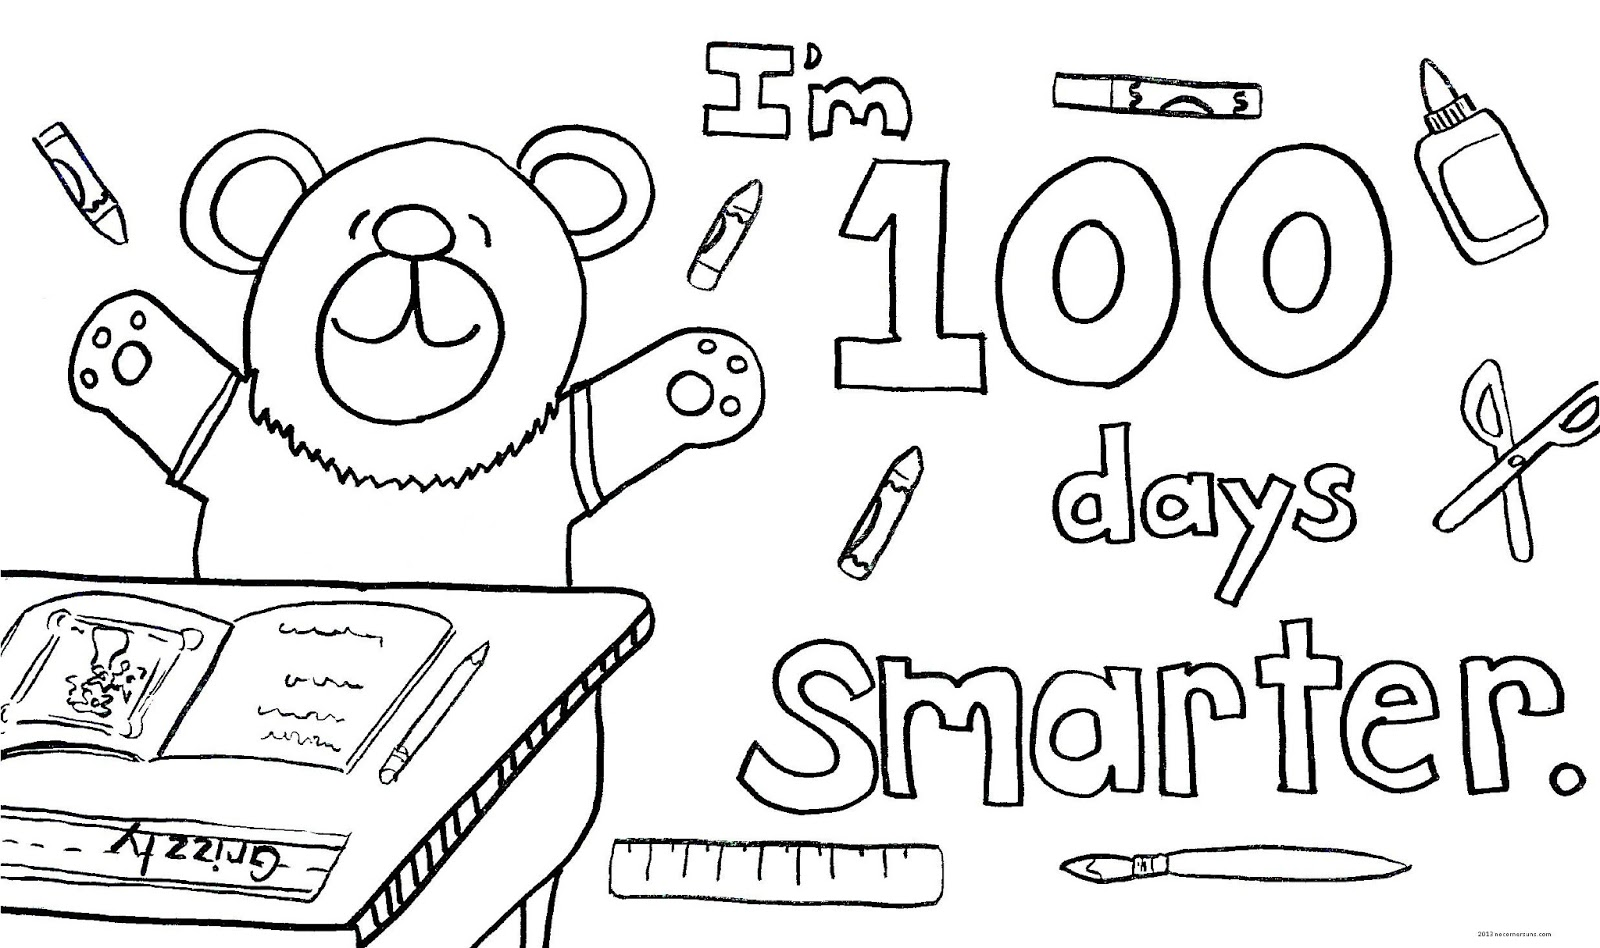 hundreth day coloring pages - photo#5